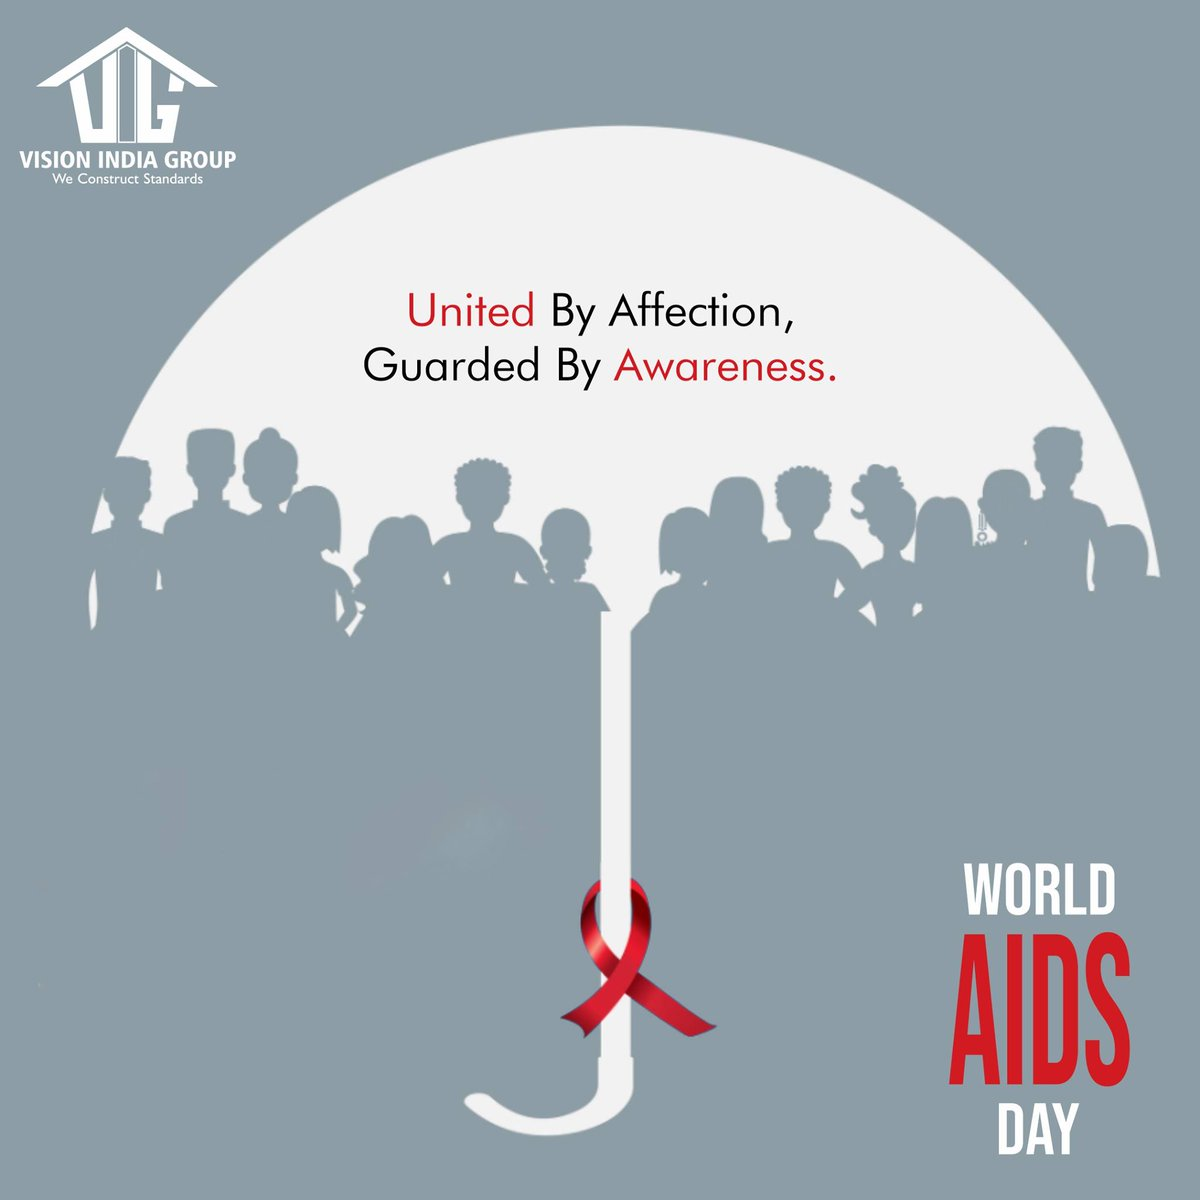 Strengthen the support to weaken the spread of AIDS. WORLD AIDS DAY #visionindiagroup #worldaidsday2020 #aidsday #awareness #aids #positivity